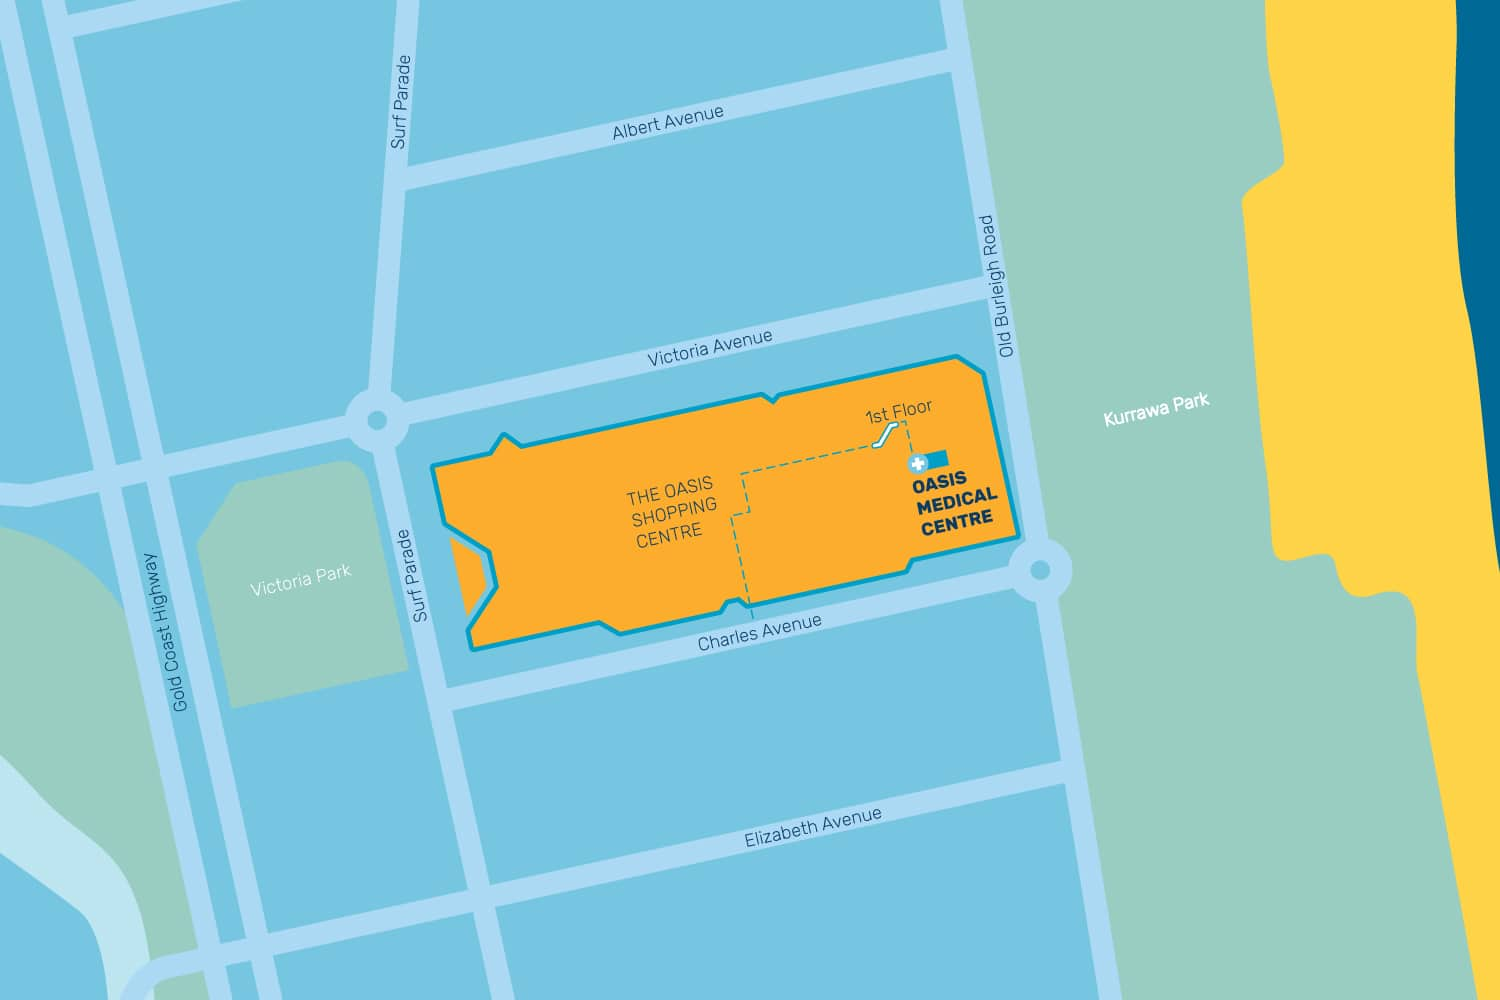 gp medical centre broadbeach - mermaid waters mermaid beach doctors gold coast - oasis medical centre - contact map